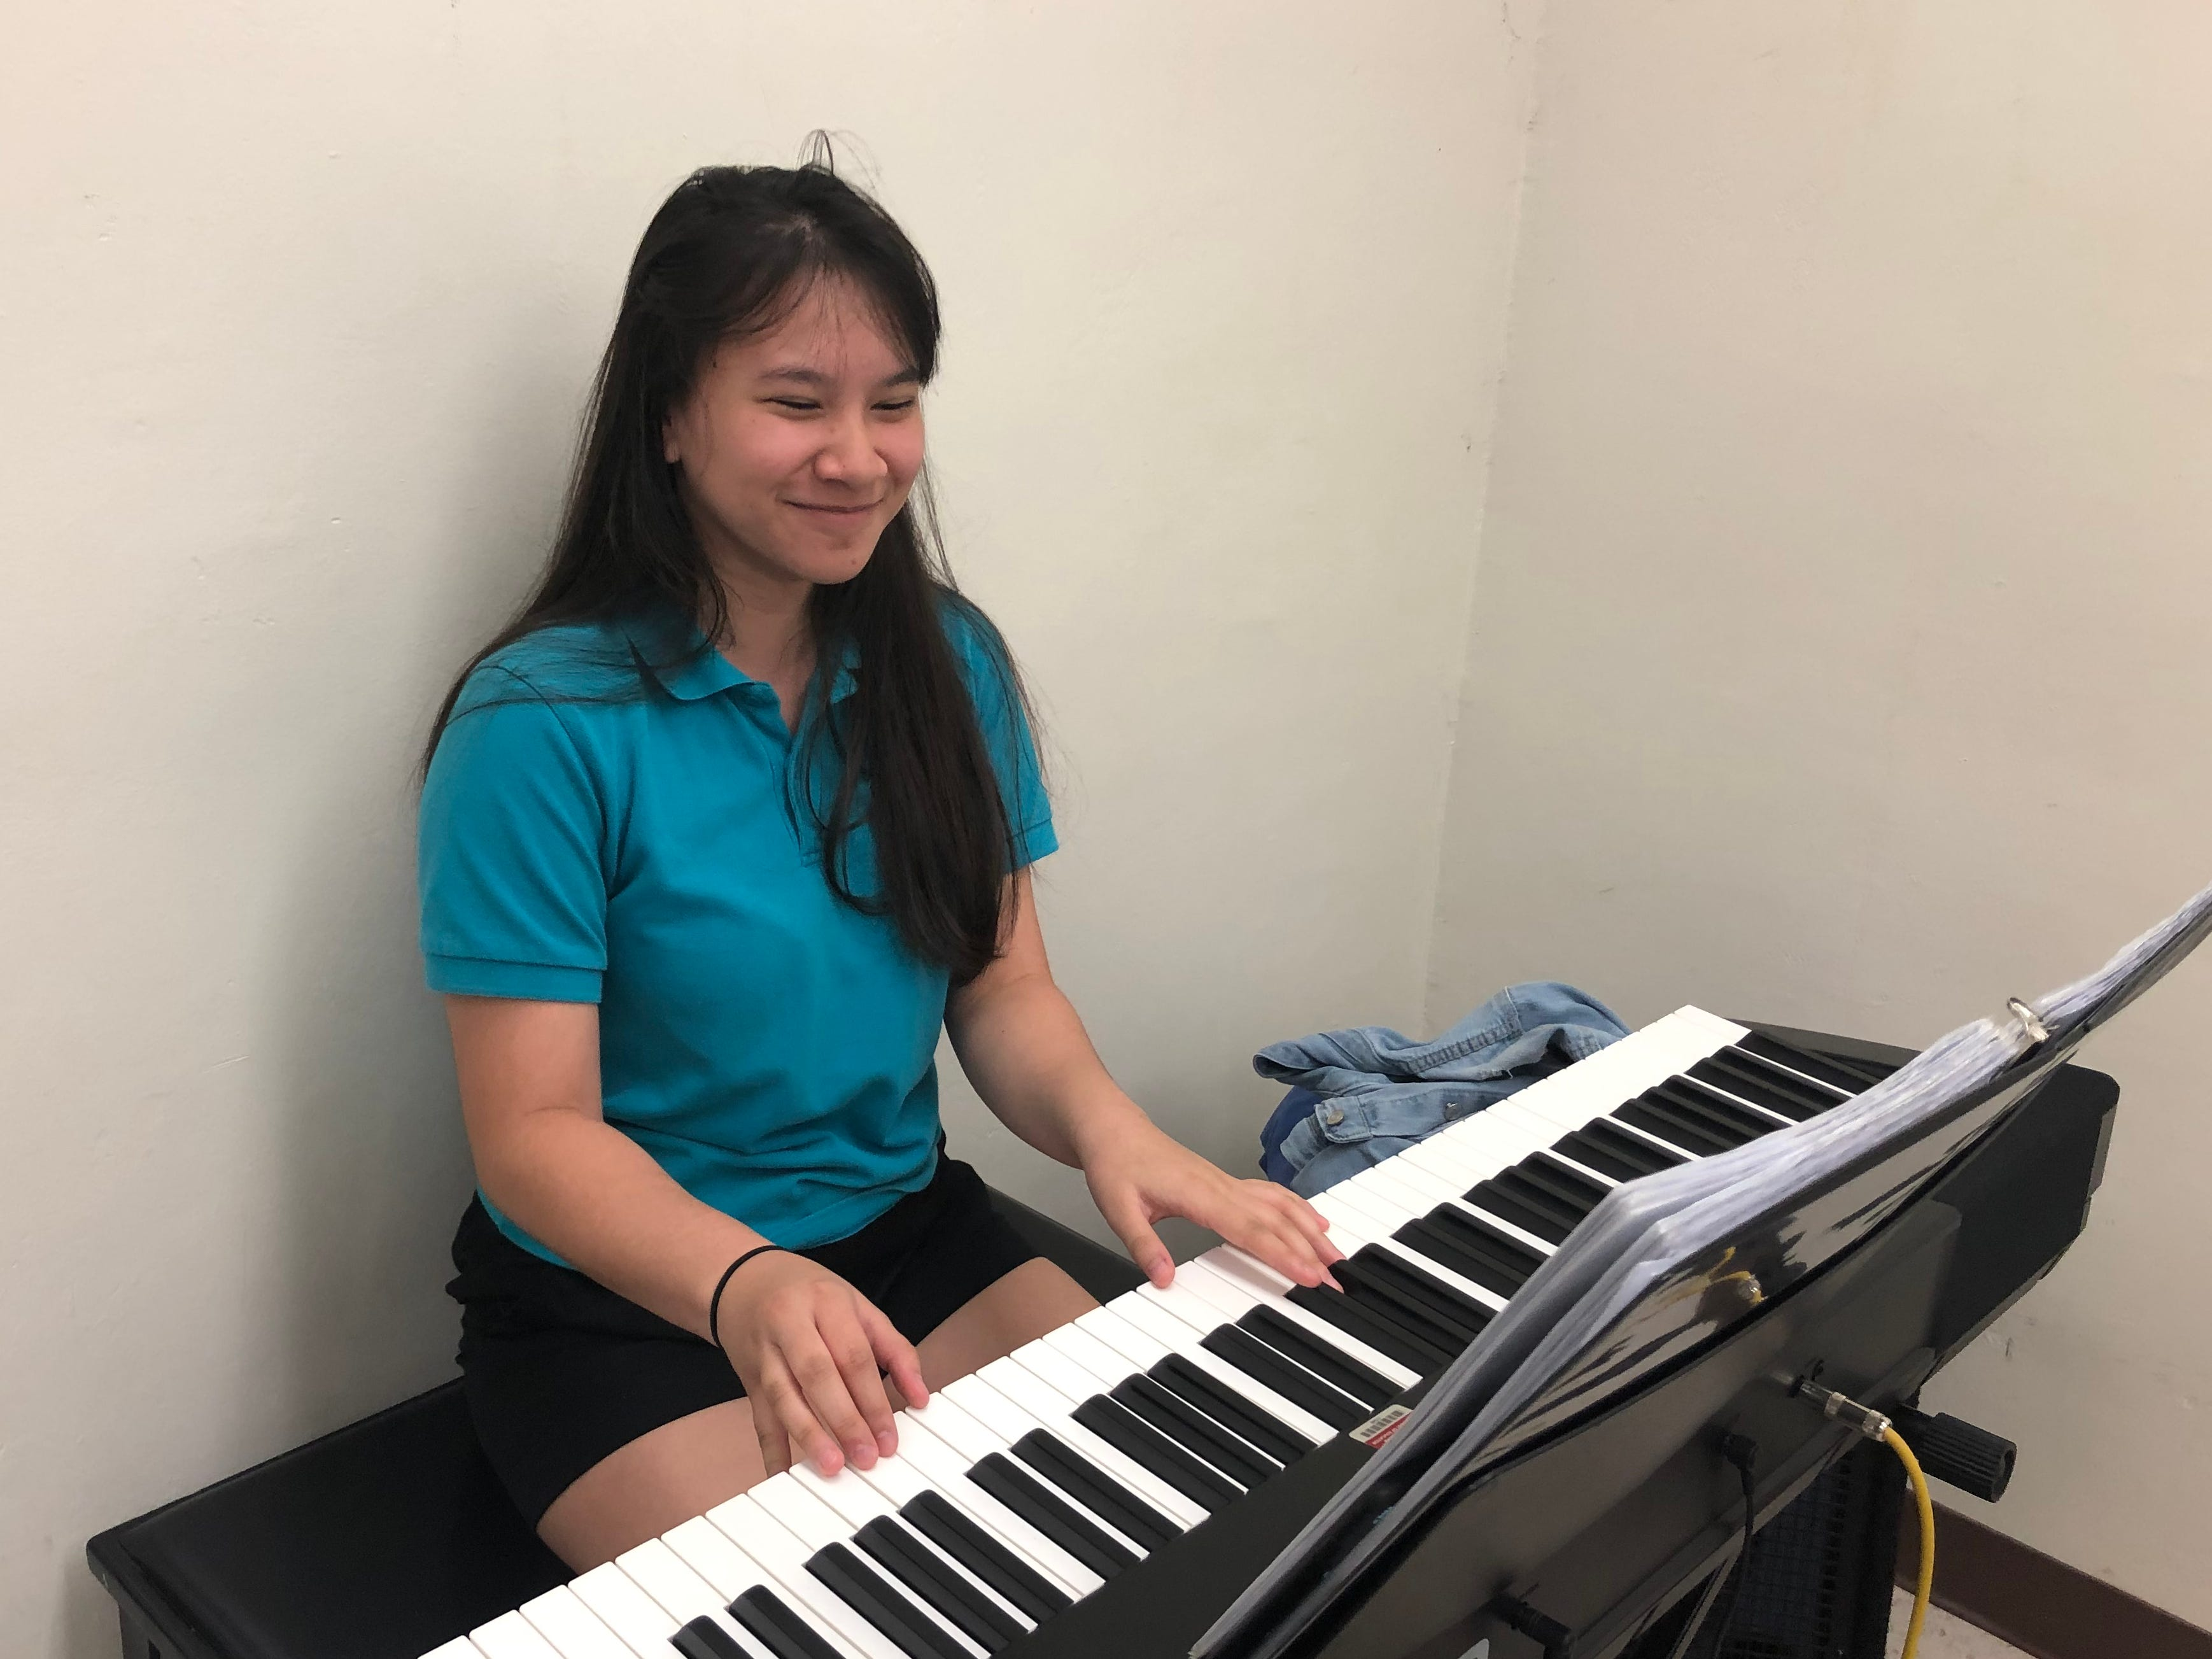 Sommer Torre of Asan and a member of Southern Variety playing the keyboard on March 15, 2019.